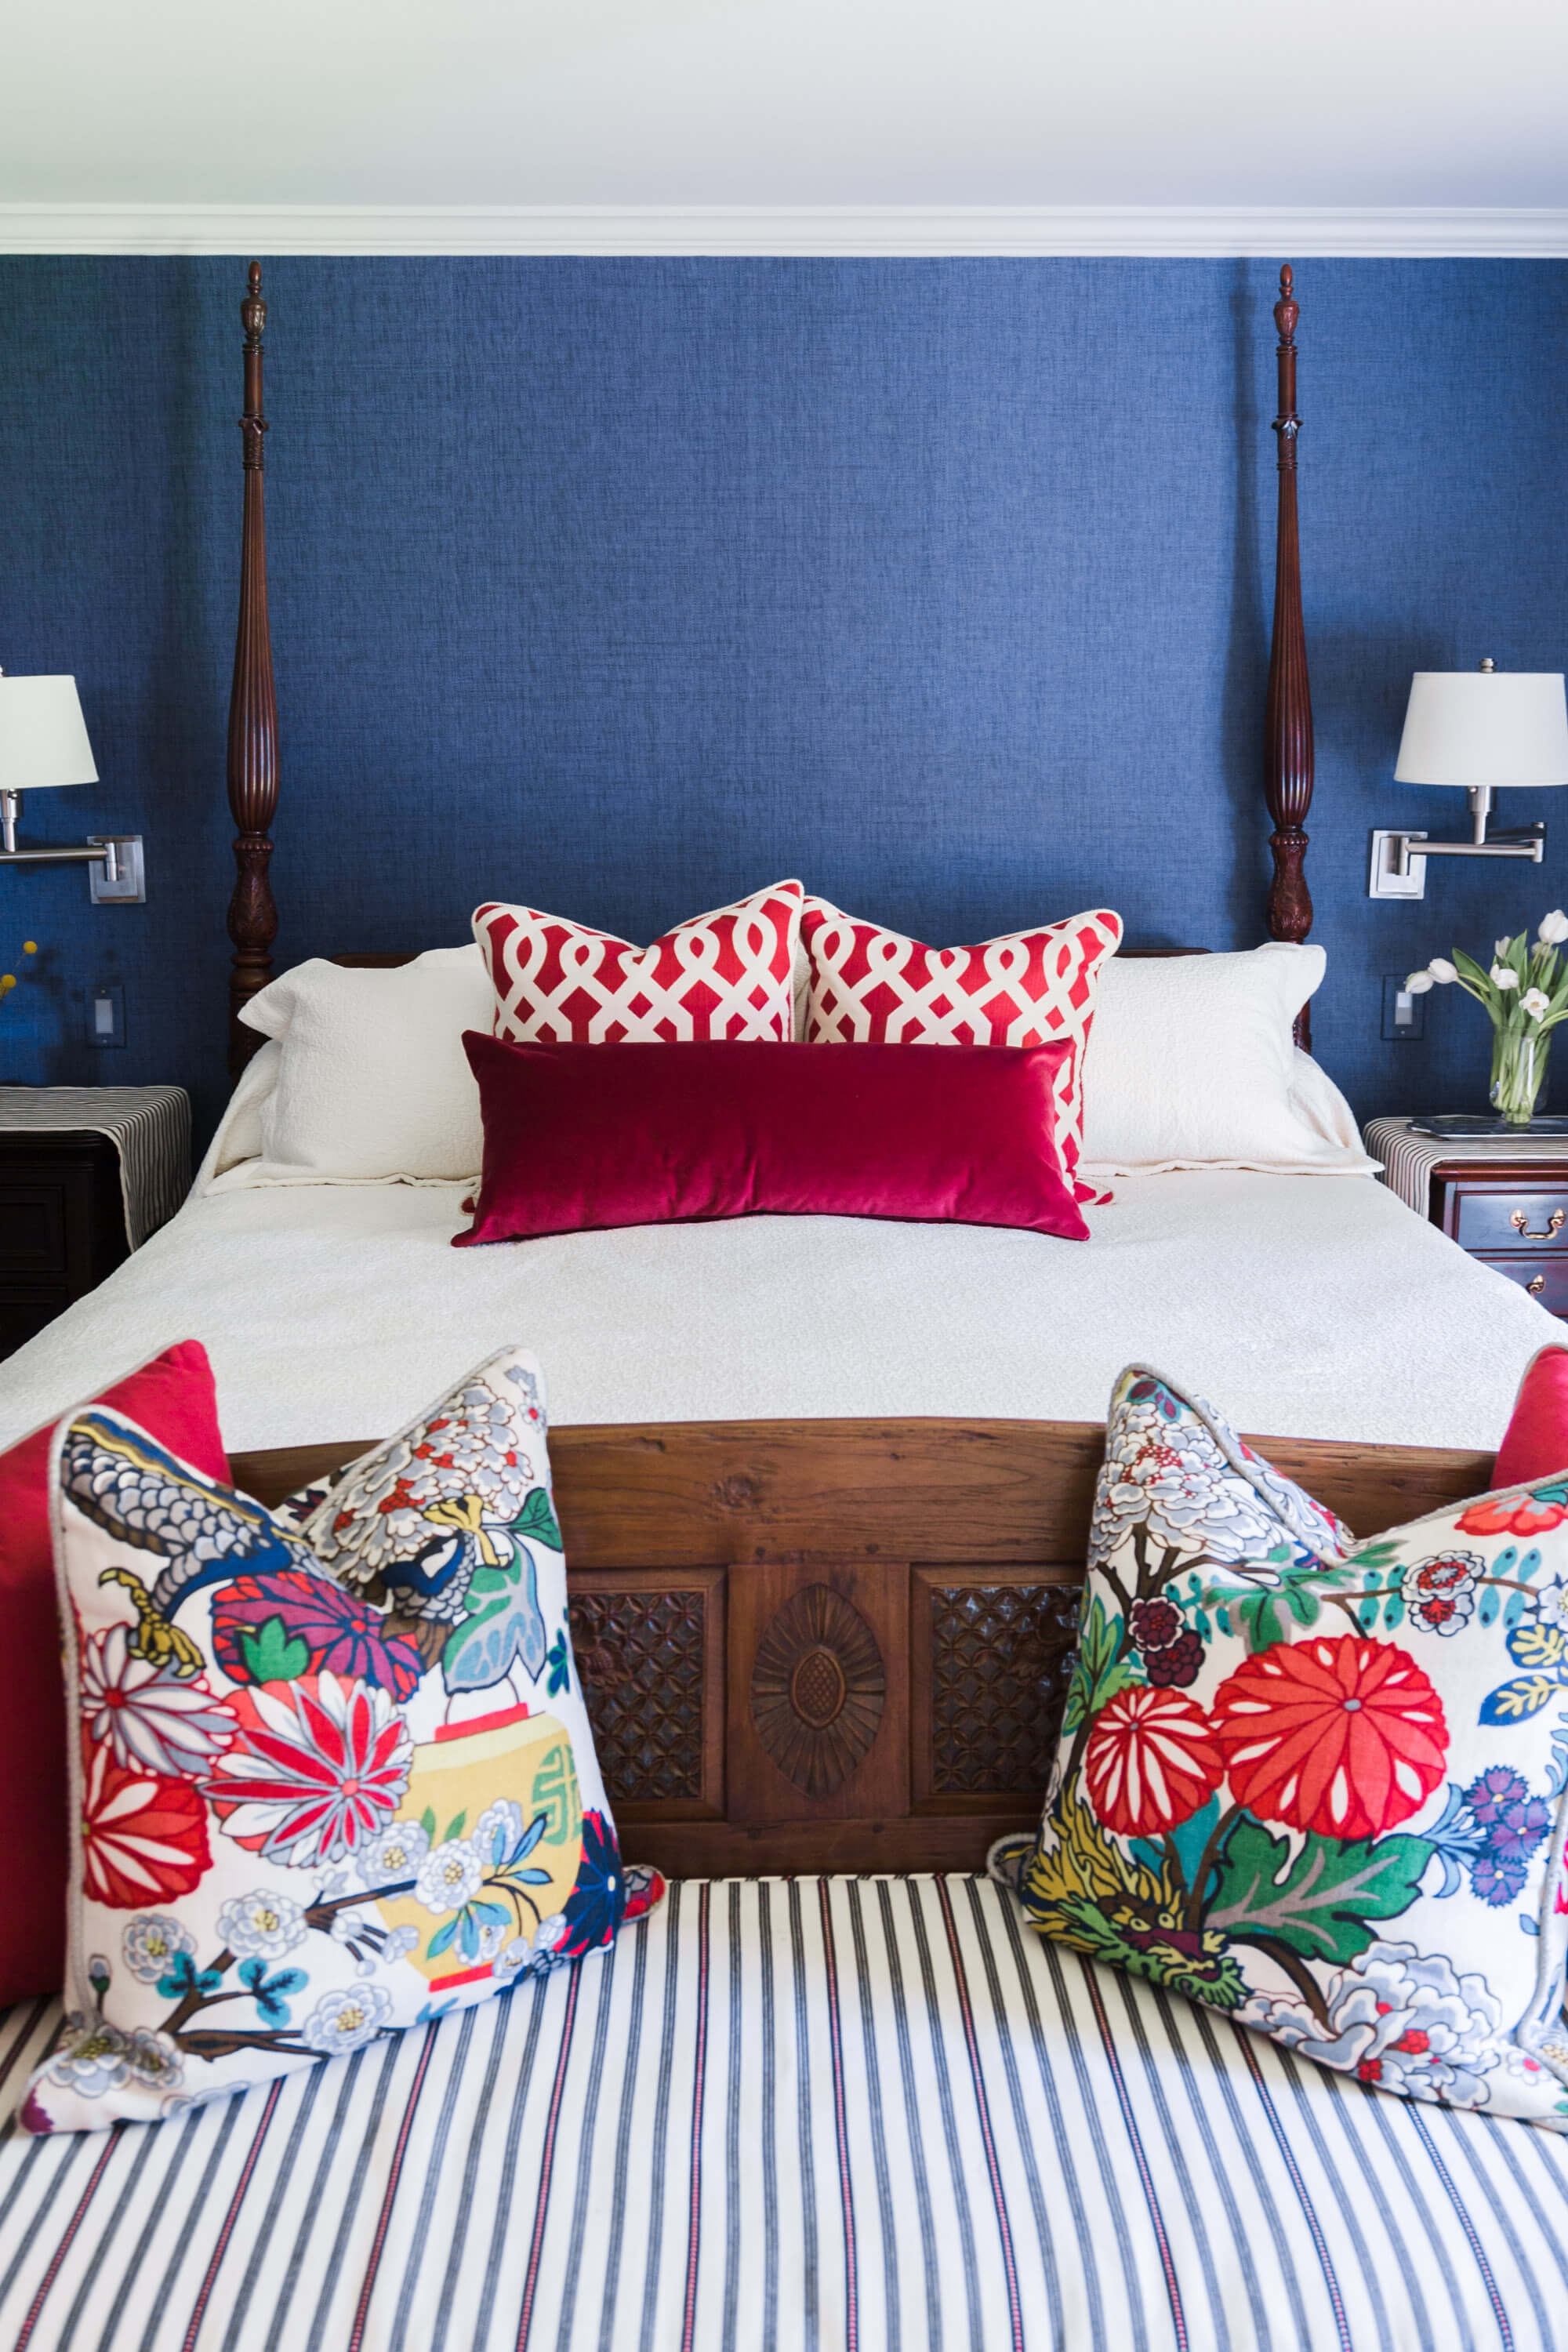 How To Pick Perfect Decorative Throw Pillows For Your Sofa Bed Or Chair Designed